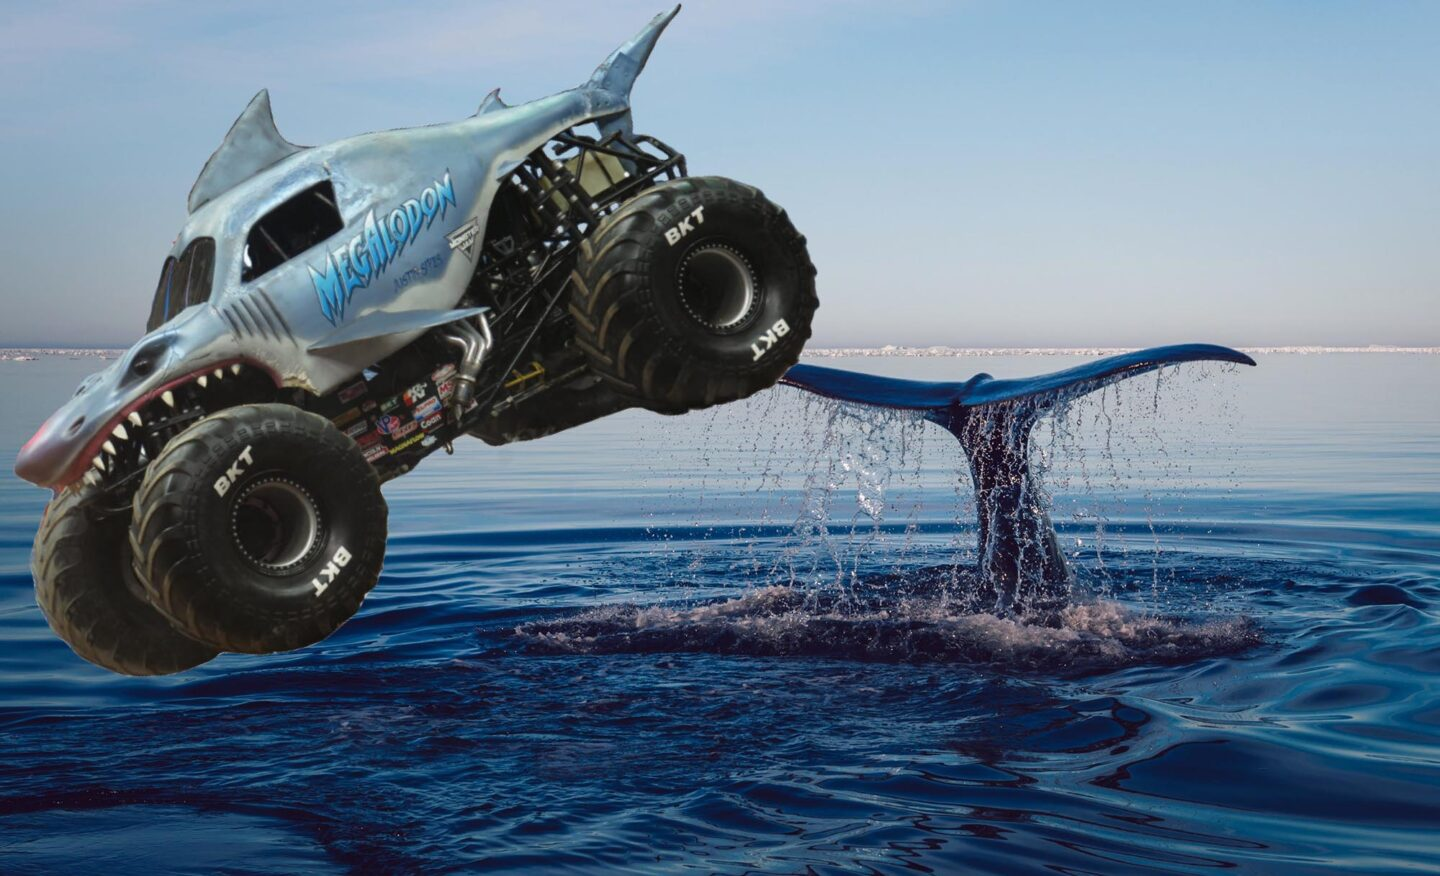 You Got a Better Idea?: Use These Sliders To See 5 Monster Trucks In The Ocean Because I Need To Publish Something Every Day and Whatever, Who Gives A Fuck, This'll Do For Today